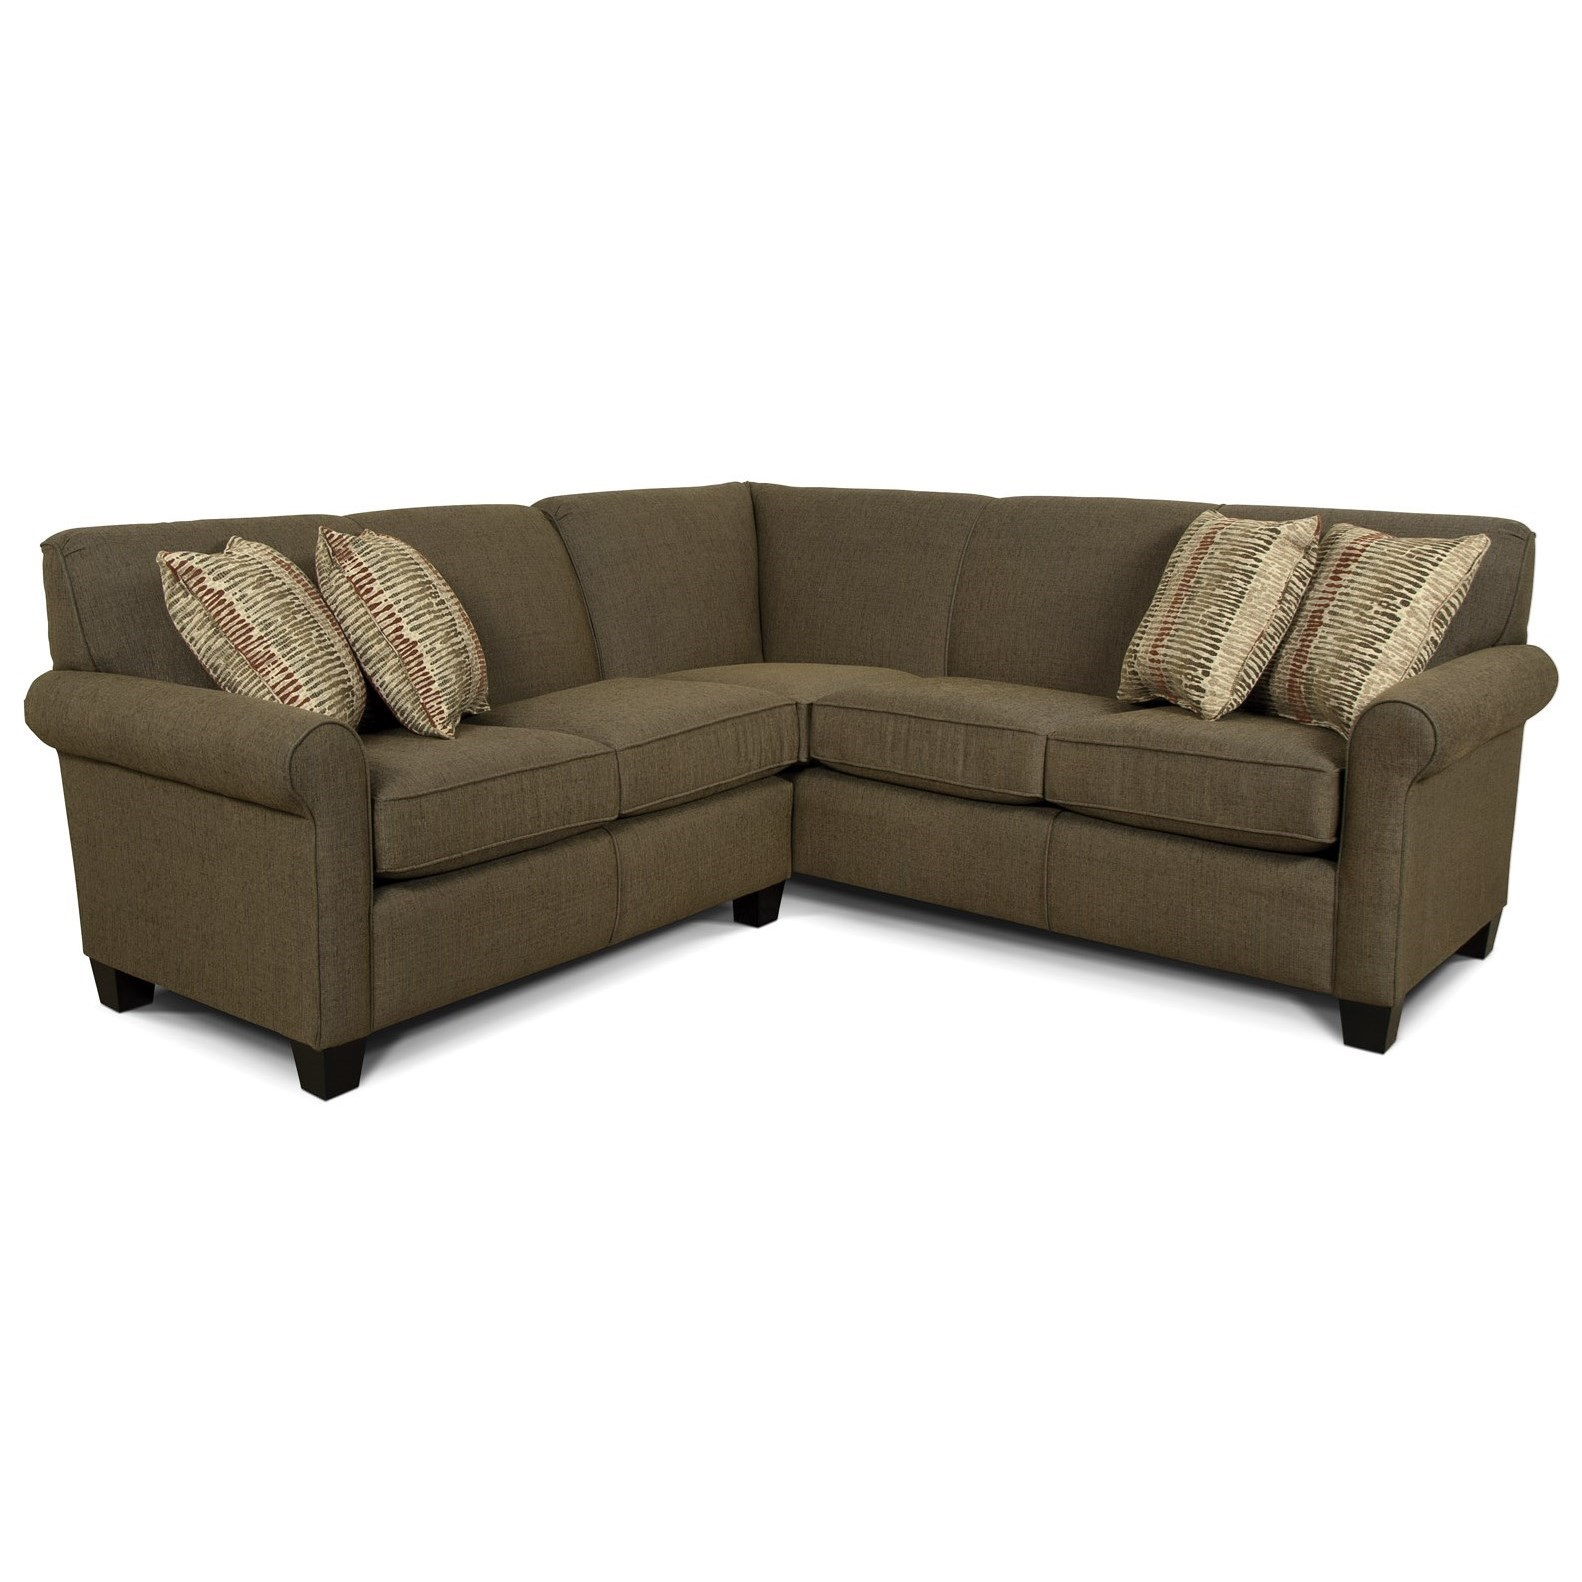 England Angie Small Corner Sectional Sofa Prime Brothers